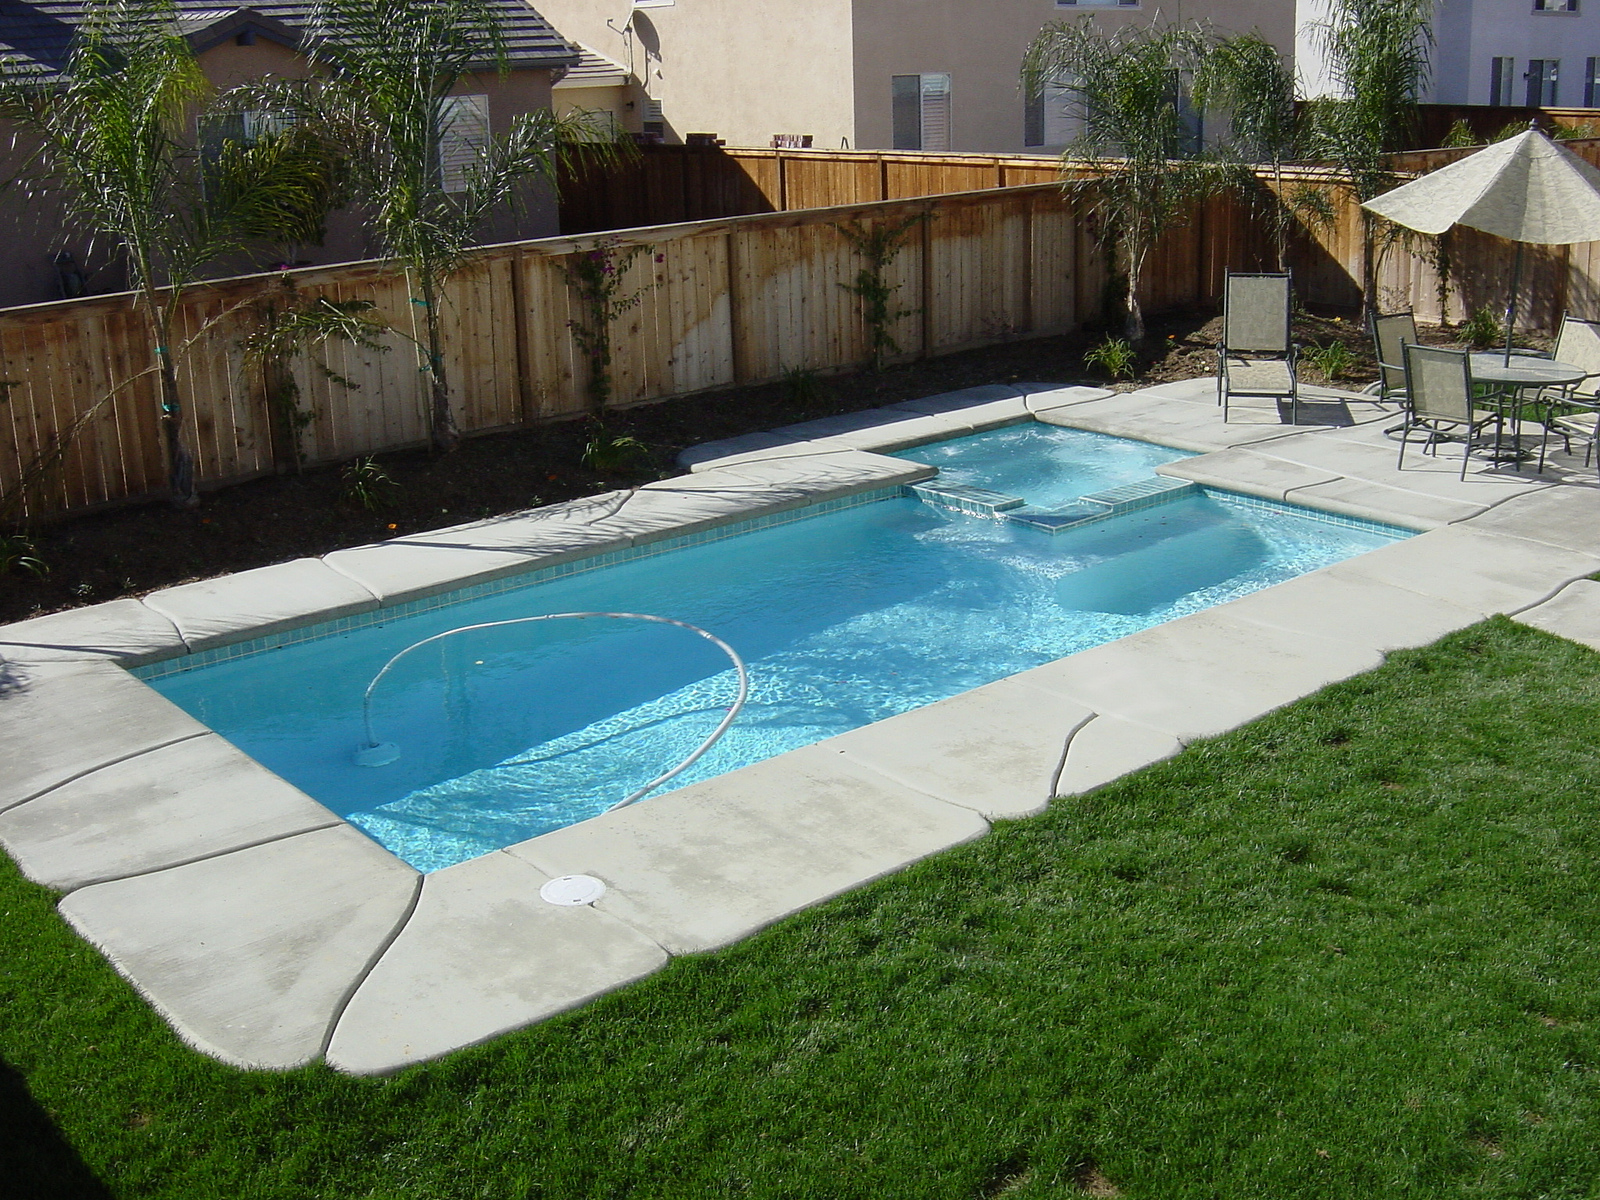 Modern Rectangle Pool Designs With Cool Natural Stones Edges And Outdoor Chair Together Umbrella At